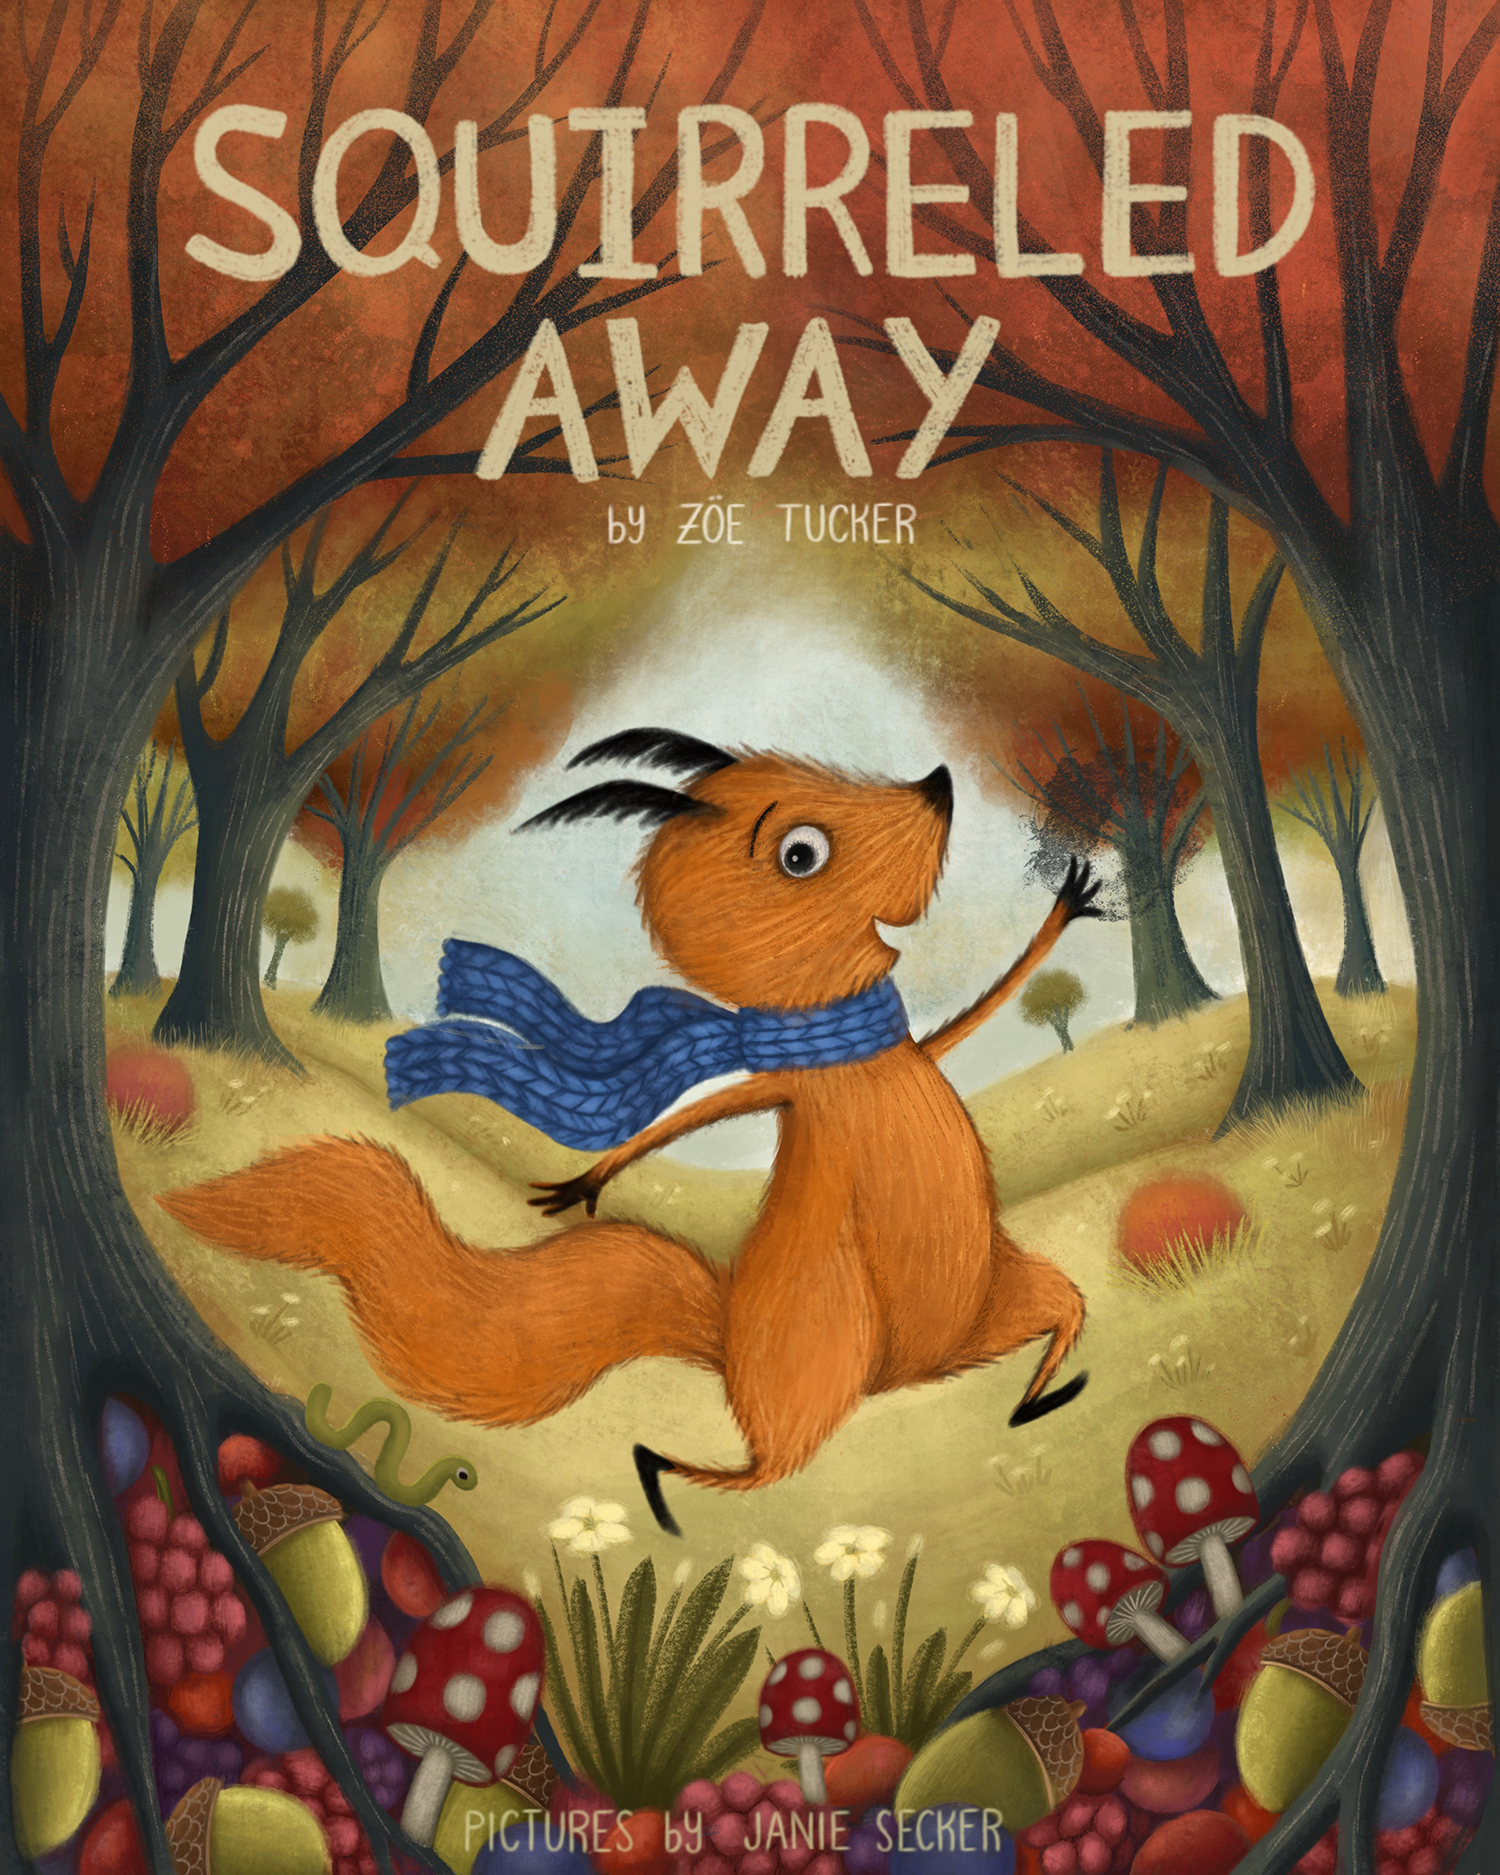 Squirrelled Away - Cover Design